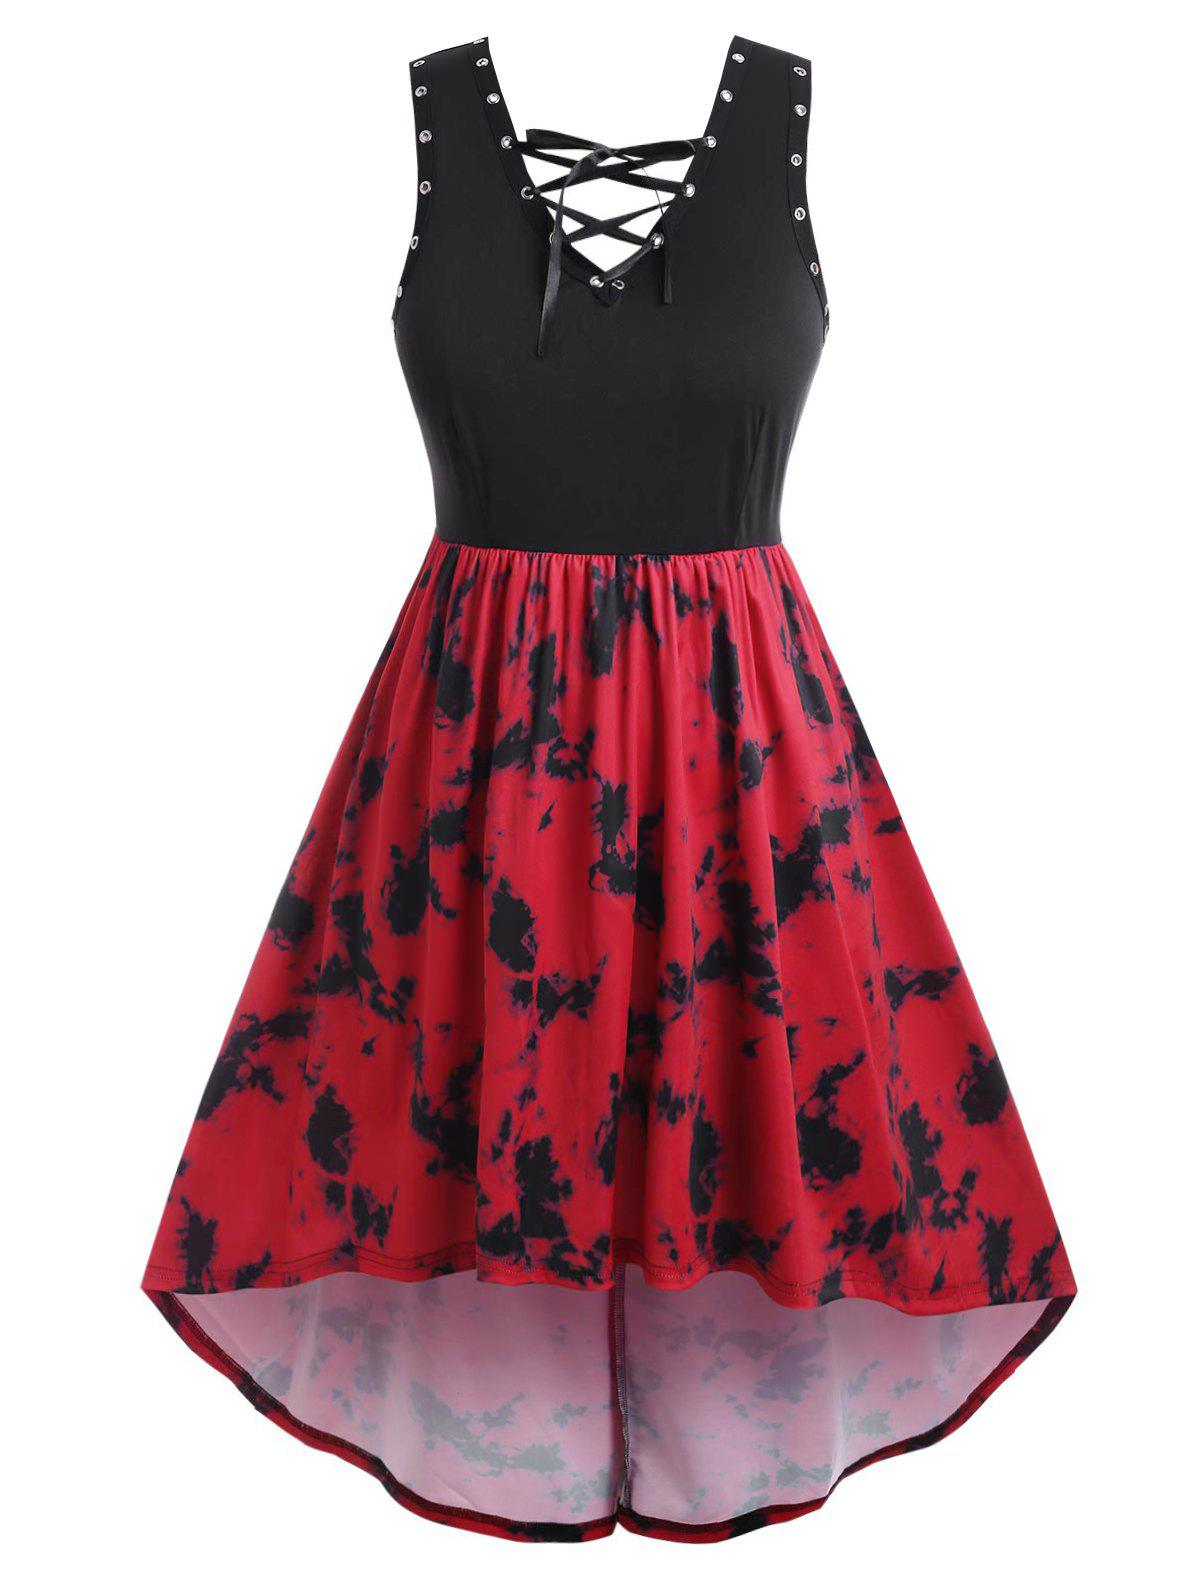 Plus Size Lace Up Tie Dye High Low Dress - RED 5X